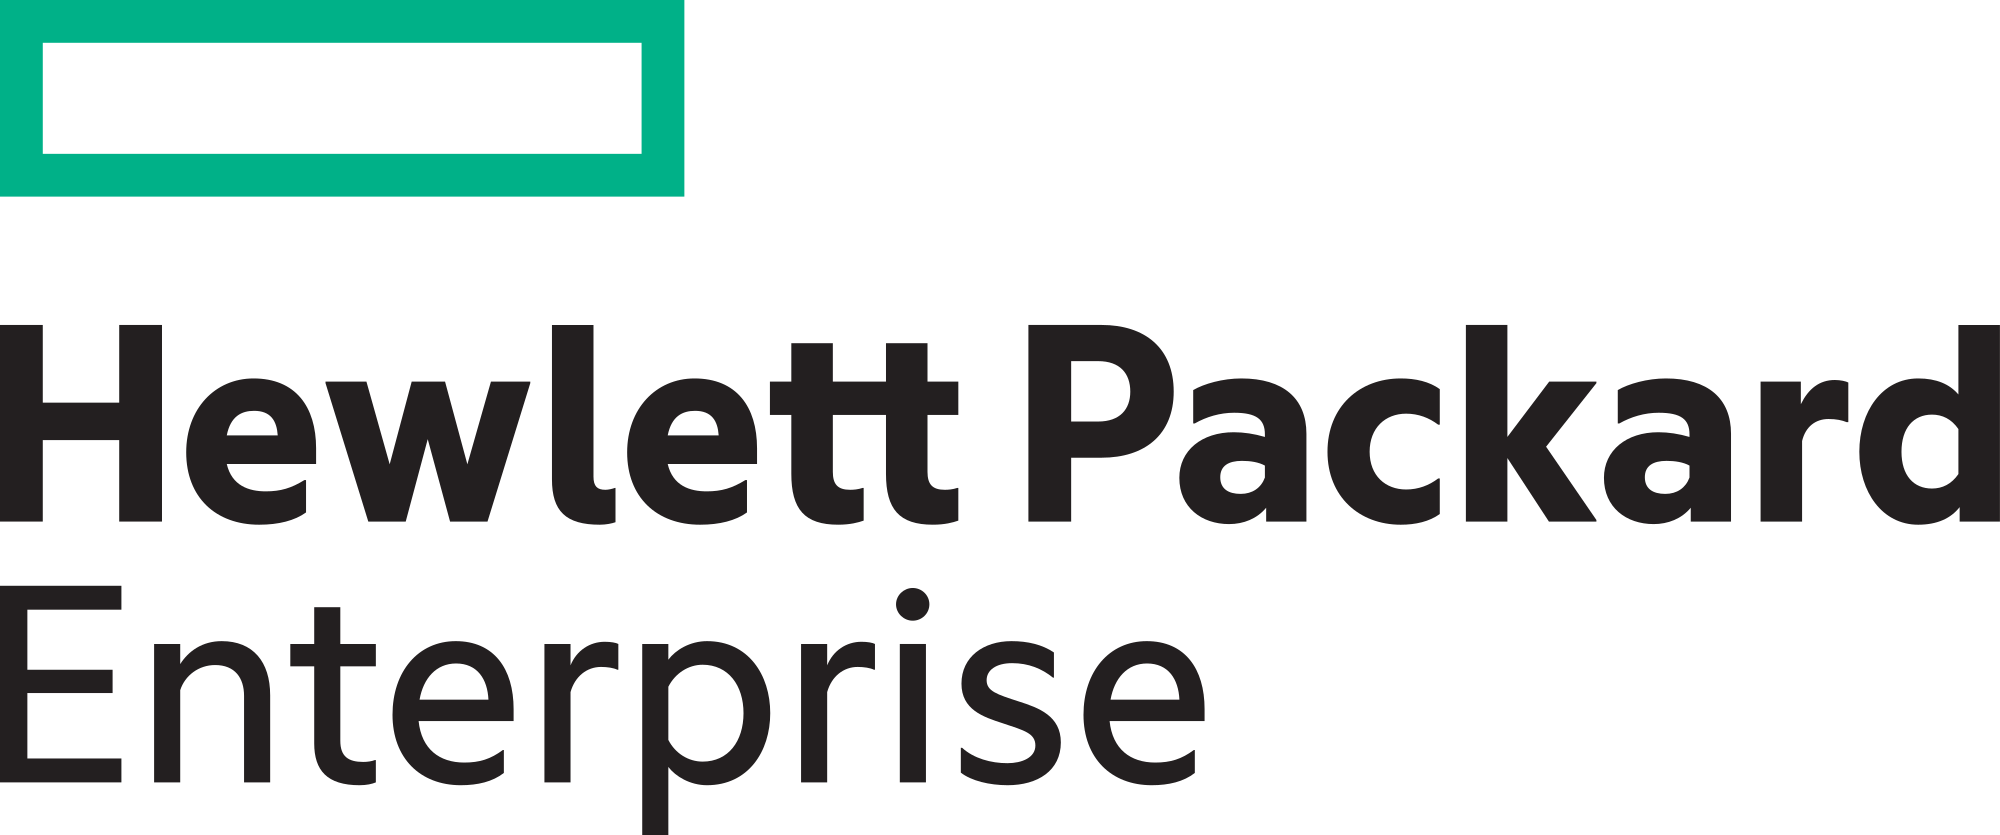 Hewlett_Packard_Enterprise_logo.svg